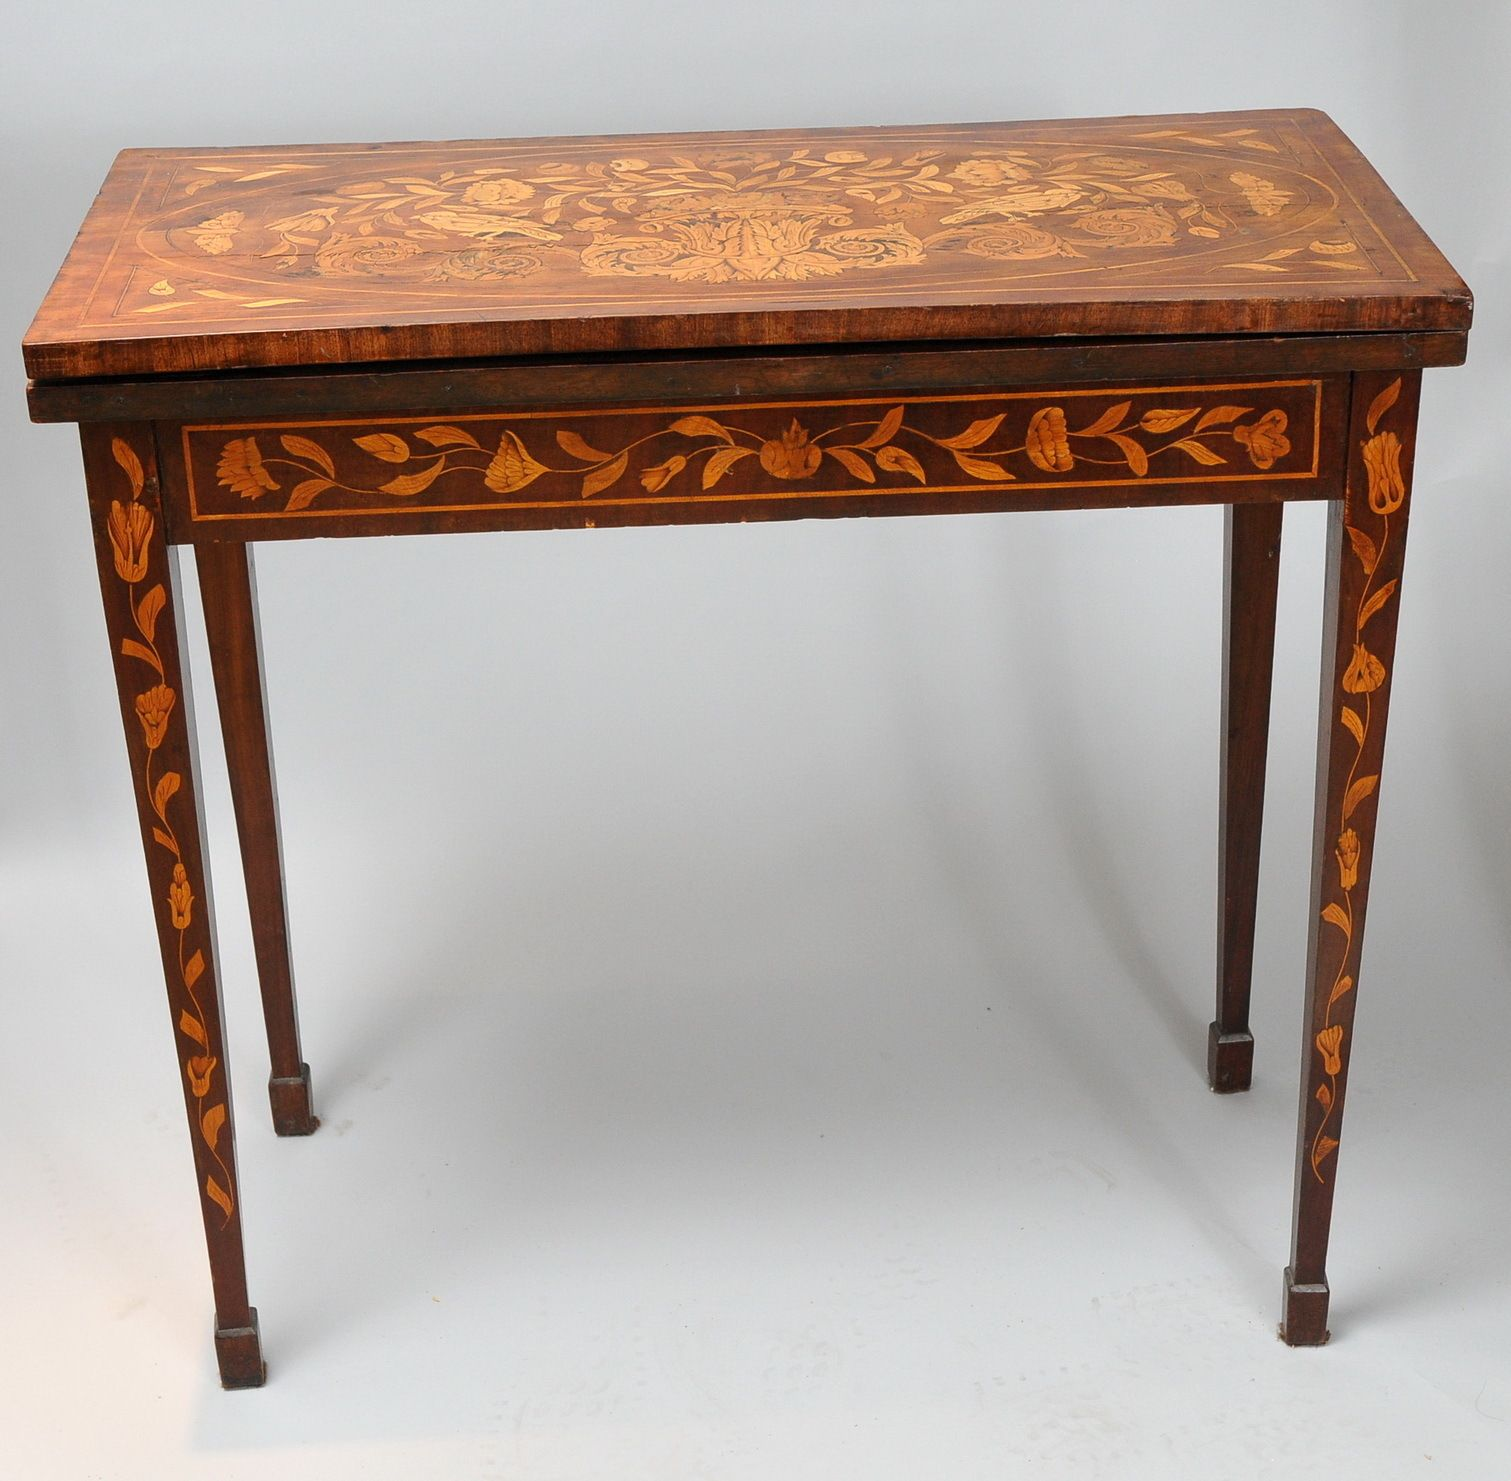 Antique Inlaid Folding Card Table Awesome Extensive Dutch Baroque Marquetry 1730 Marquetry Furniture Upholstered Furniture Antique Furniture